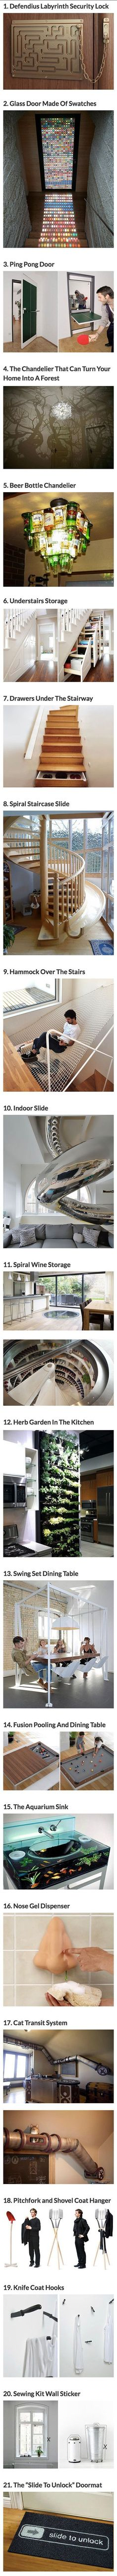 Some of these ideas would be AMAZING fun depending on my future home style.  Especially the shovel and pitchfork!! Check out my other pins and consider following me if you like what you see. #AwesomeInventions